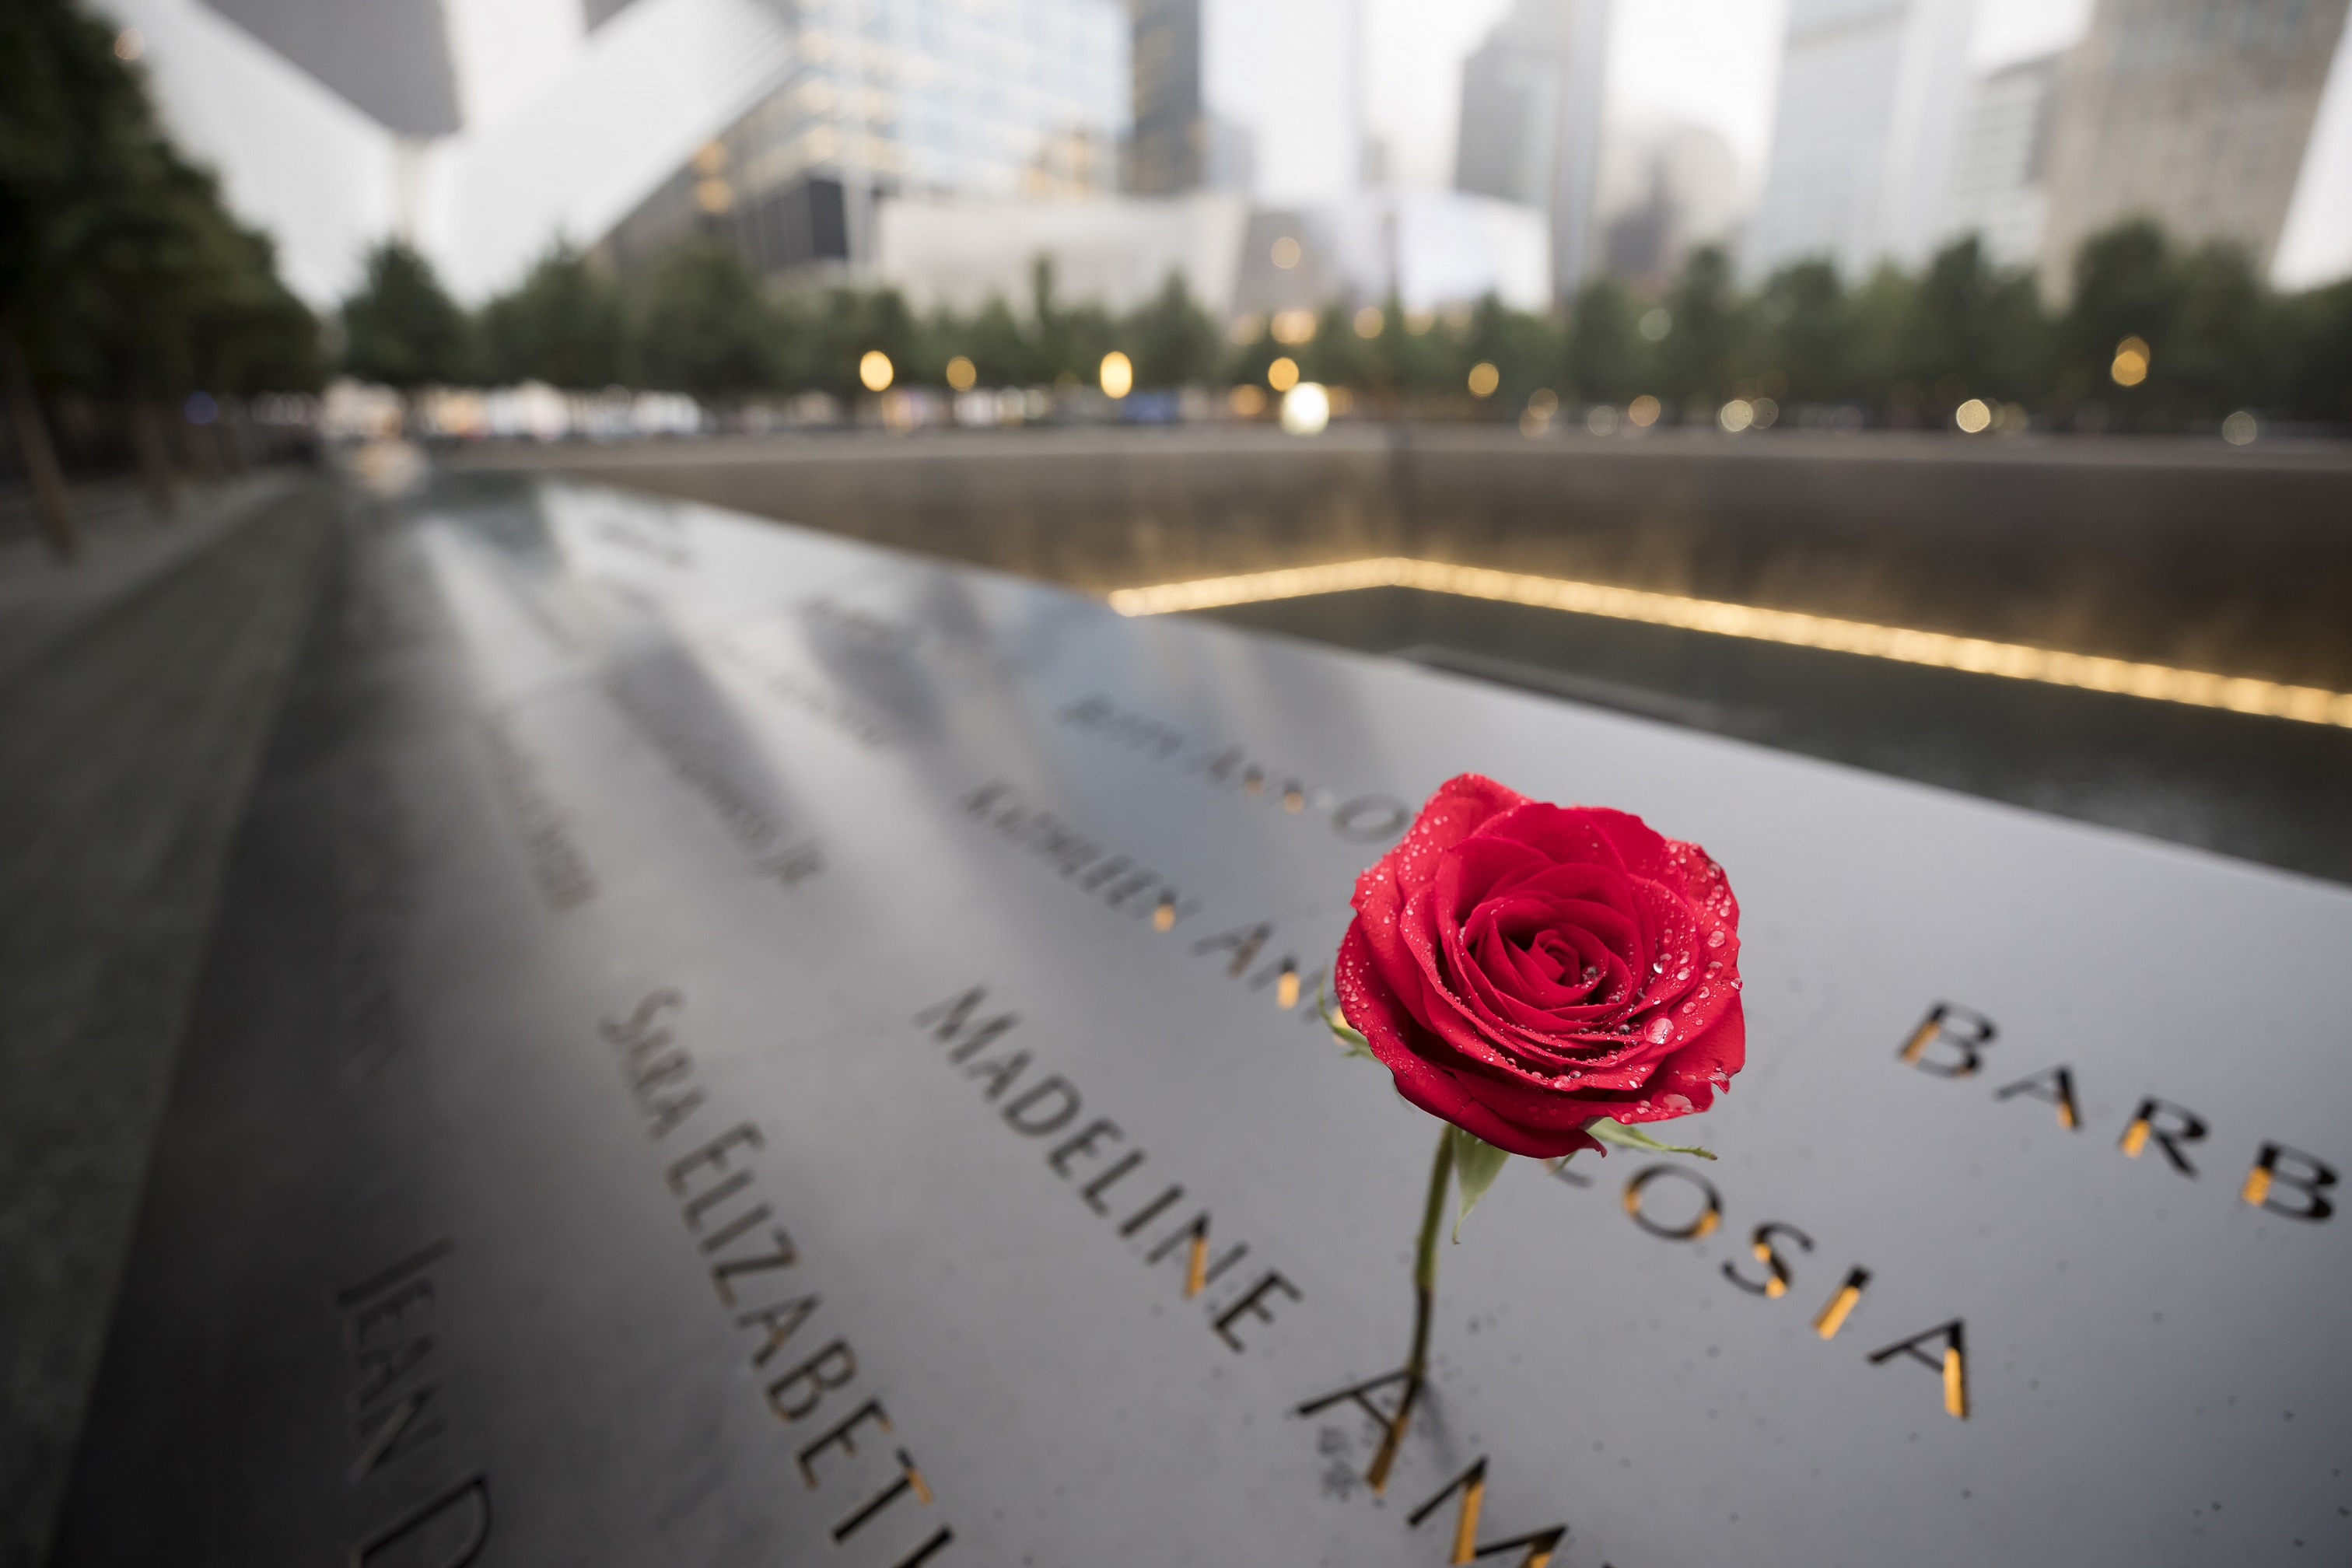 A single red rose stands at a name on a bronze parapet surrounding the lit-up reflecting pool in the footprint of the North Tower. The names of victims blur out of focus in the background.